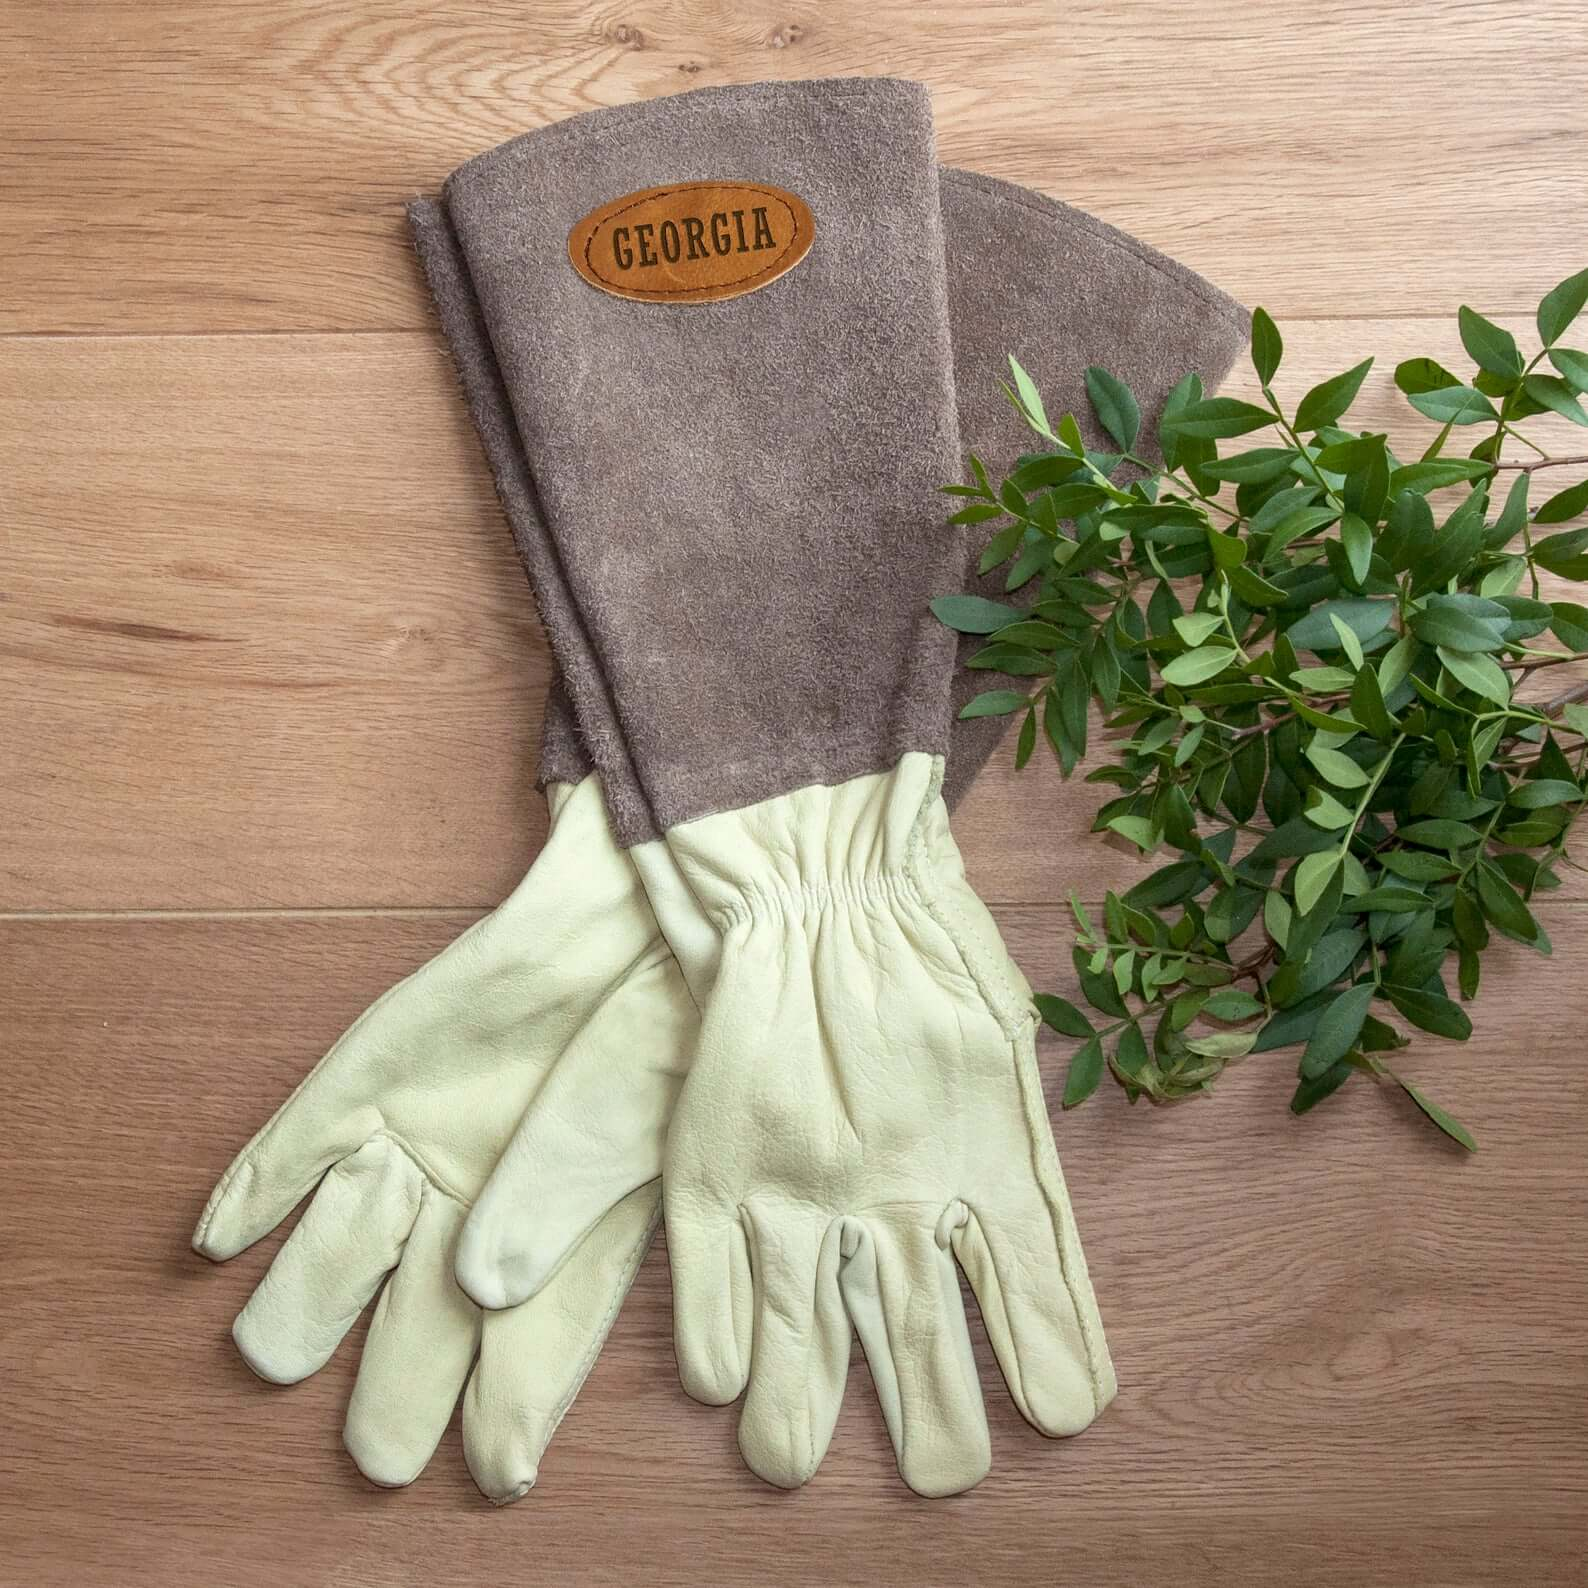 Personalized suede and leather gardening gloves